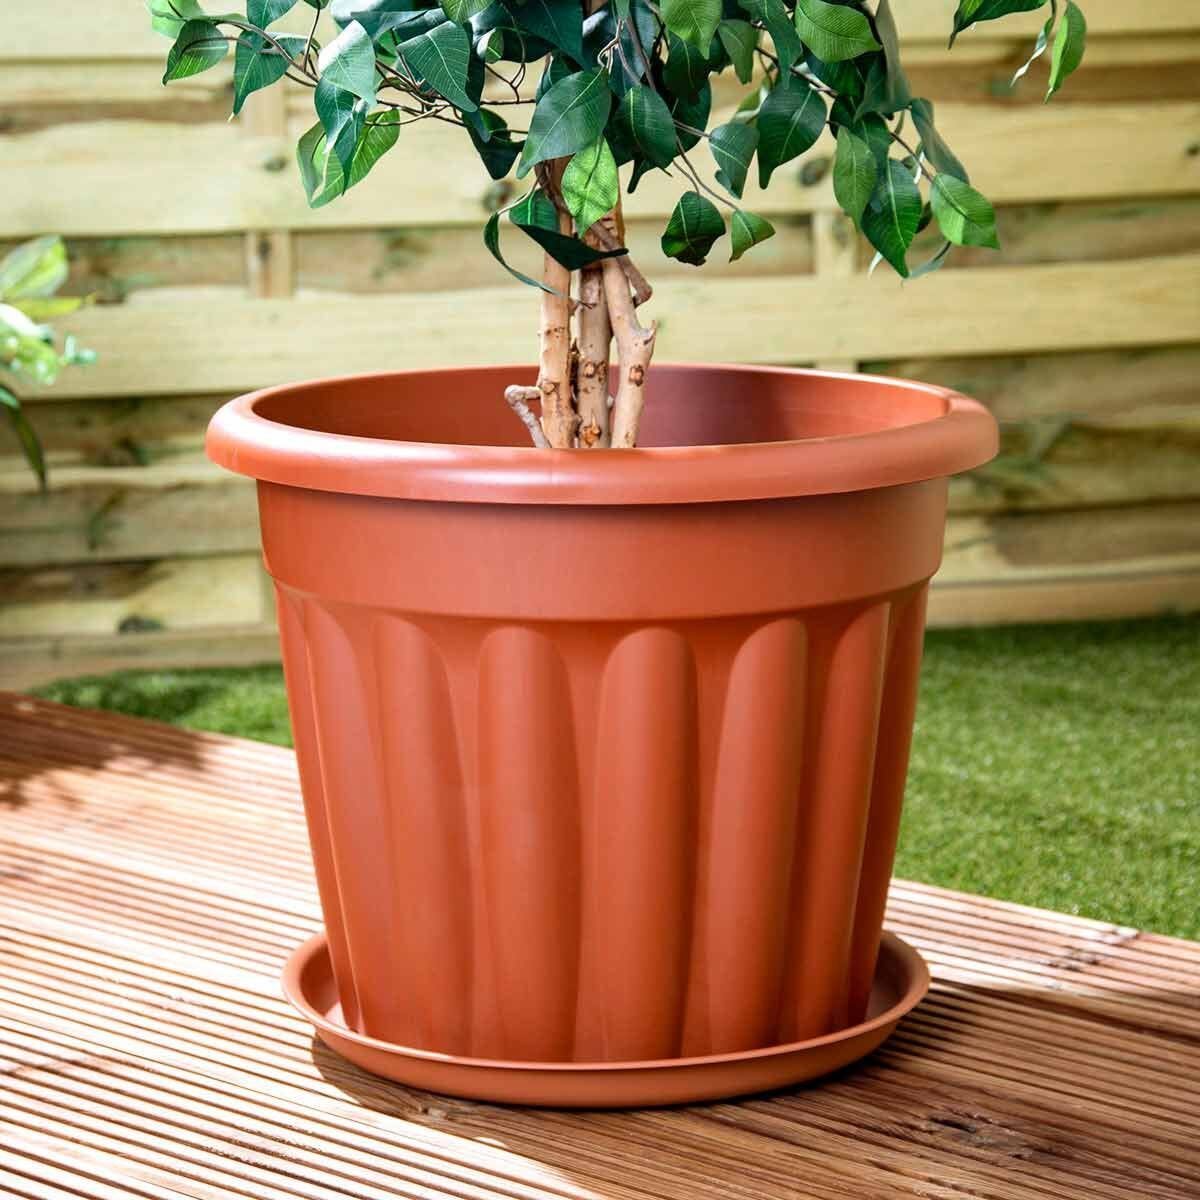 Wham Vista Traditional Planters with Tray 50cm Set of 3 Terracotta